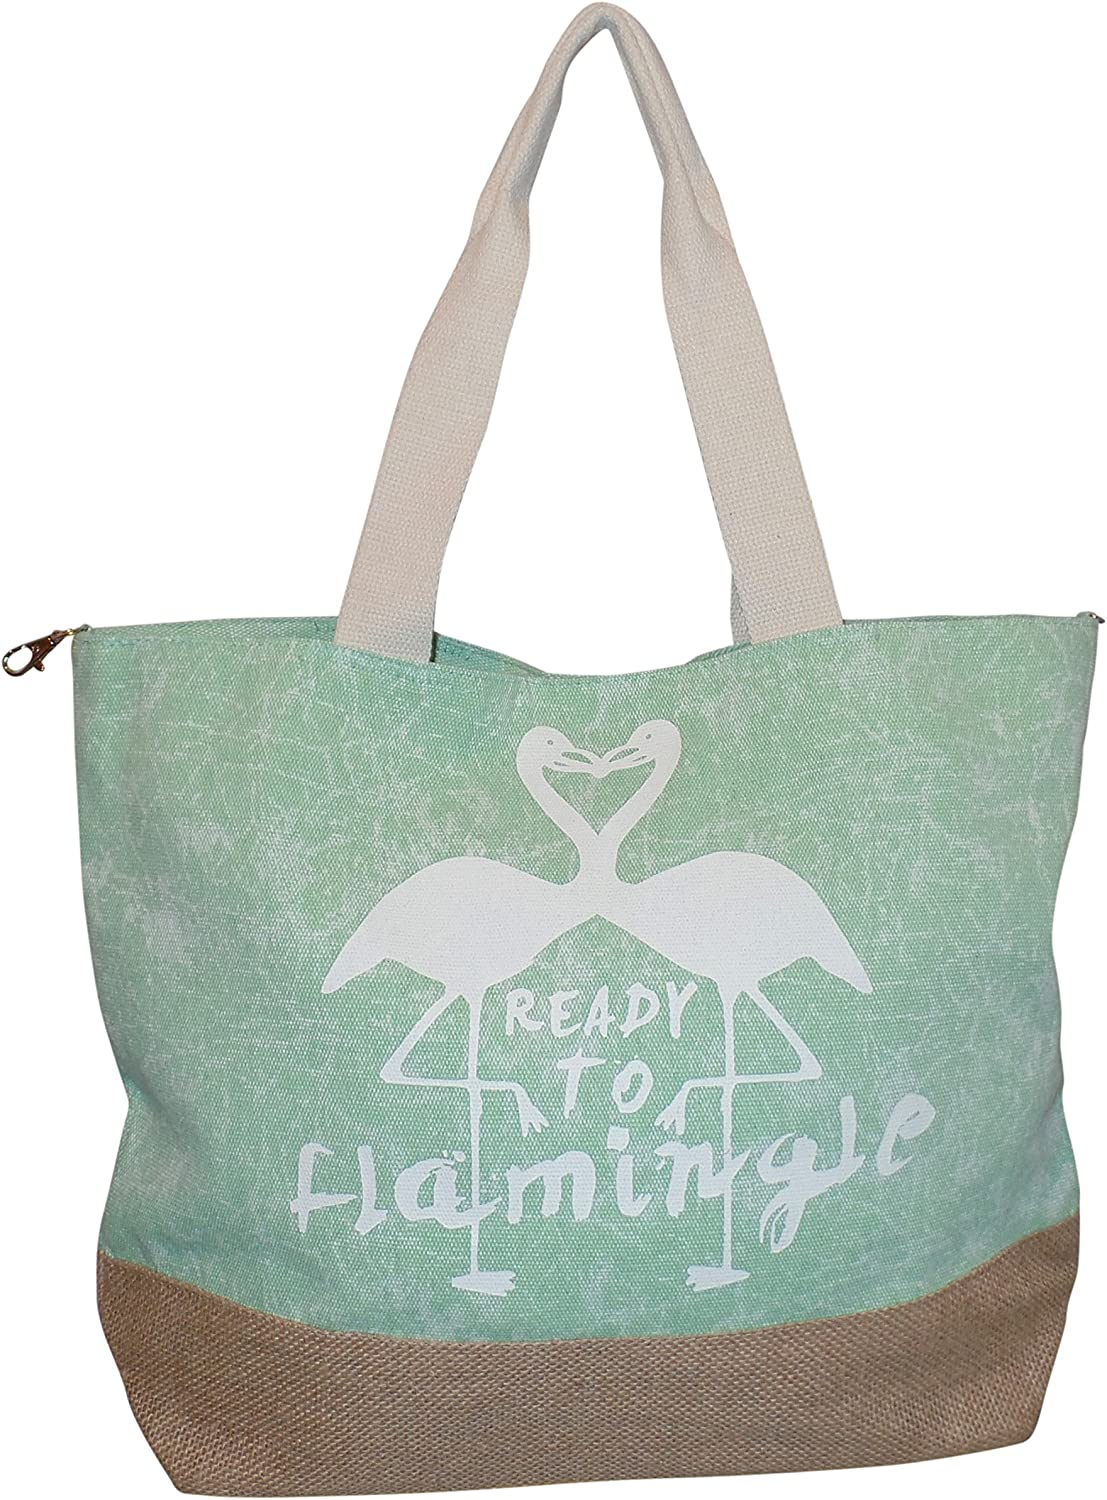 """Canvas green seashell tote bag Zipper 19/"""" Wide 13/"""" Tall 6/"""" Wide Large"""